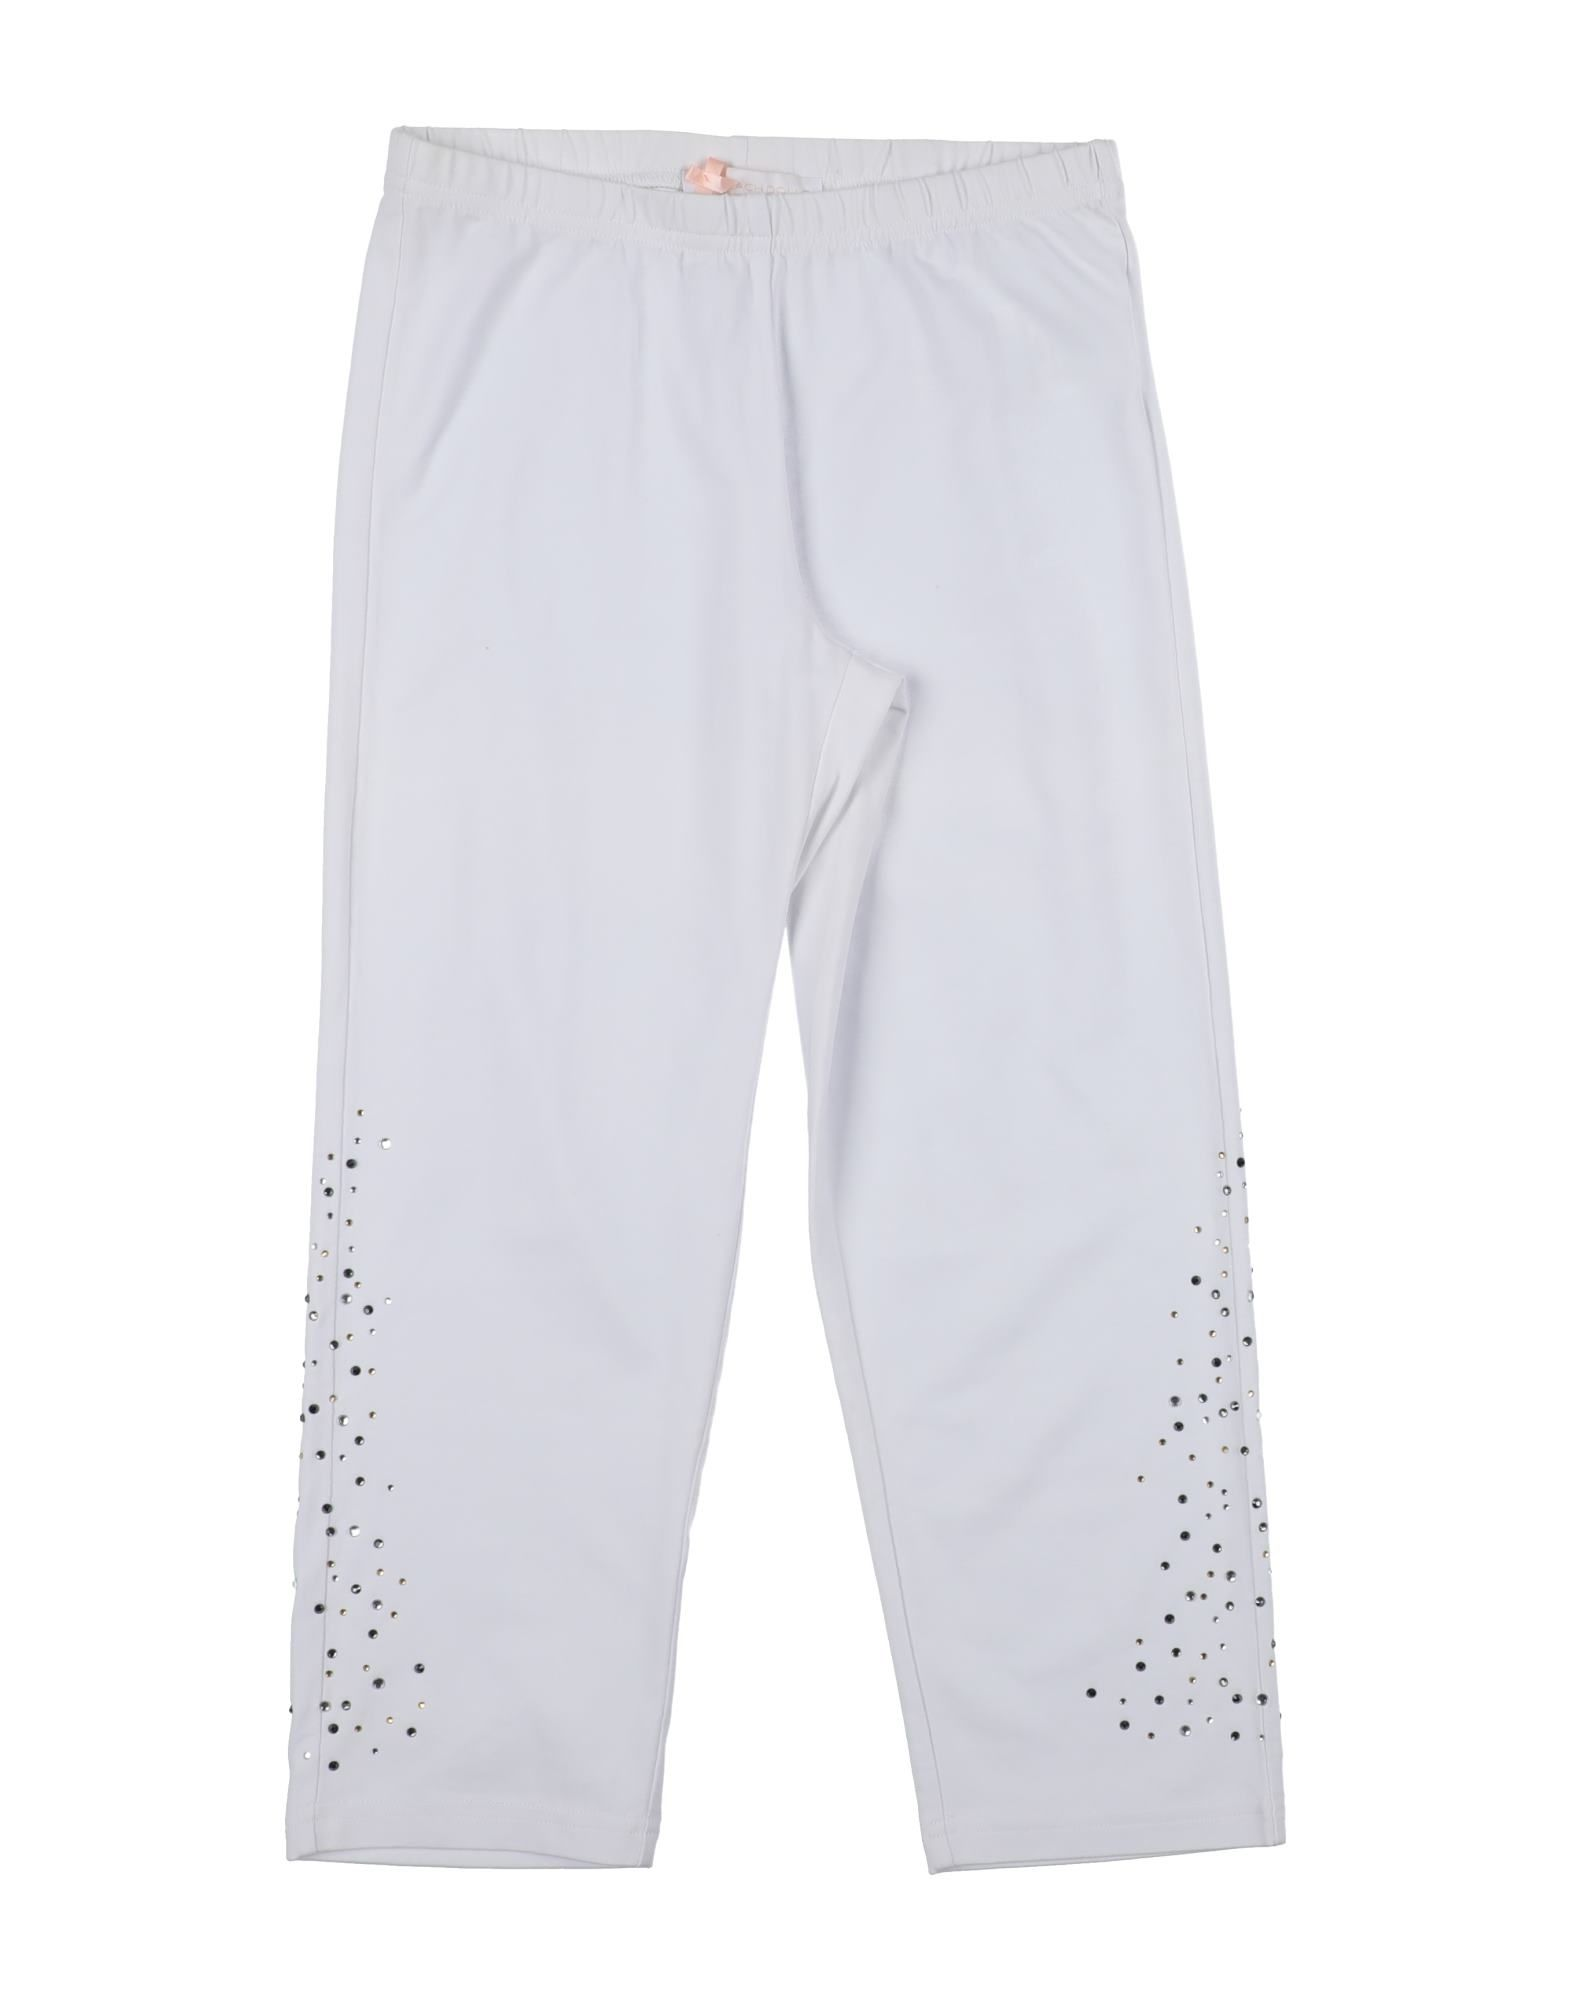 Heach Dolls By Silvian Heach Kids' Casual Pants In White